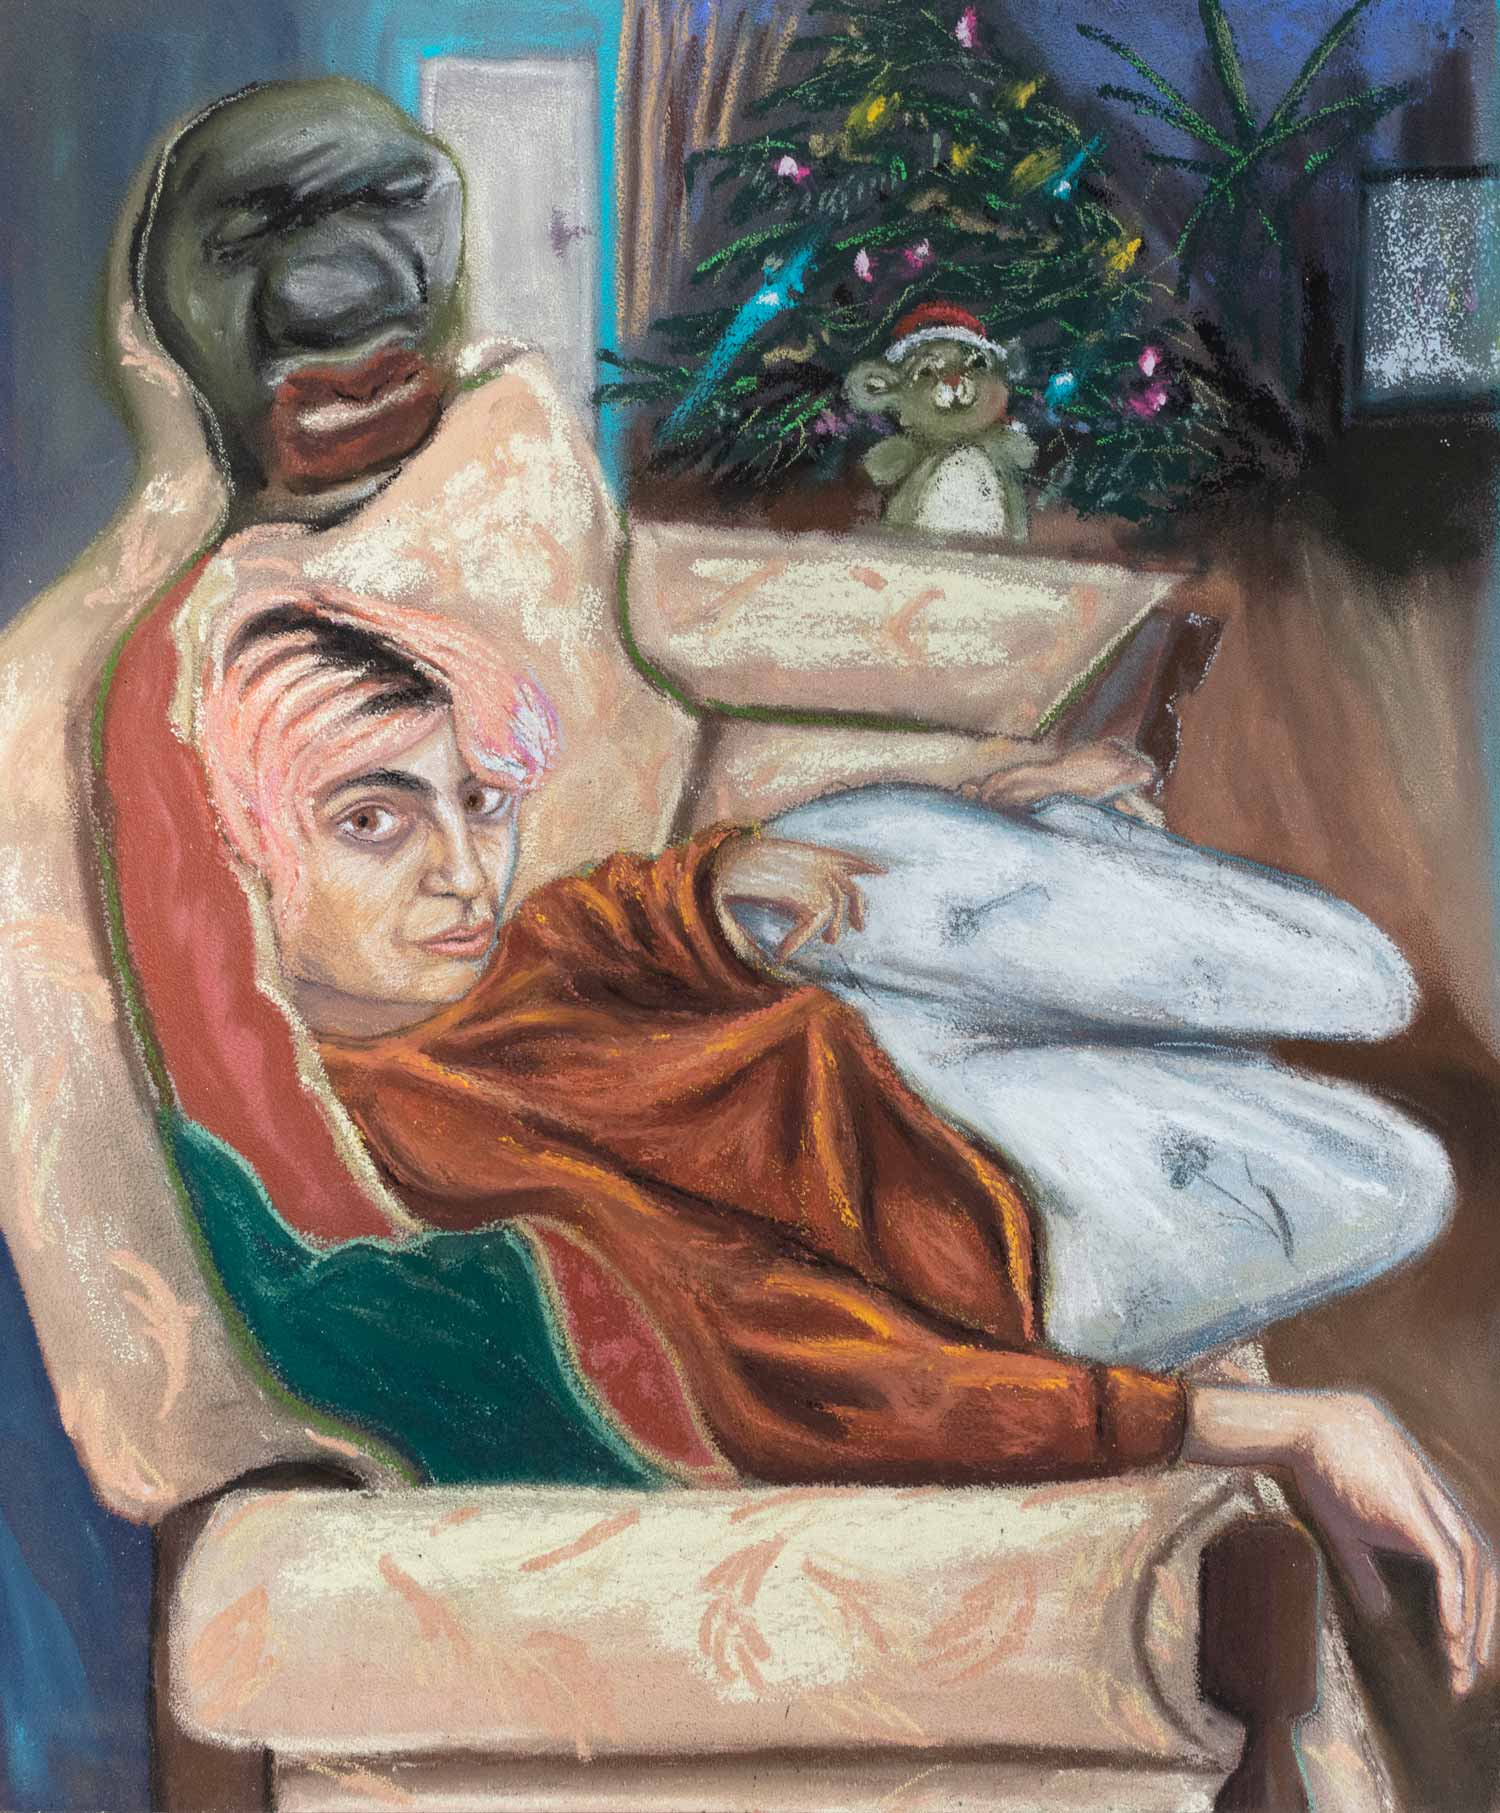 LIL' SISTER AT CHRISTMAS WITH PAULA REGO'S PILLOW MAN